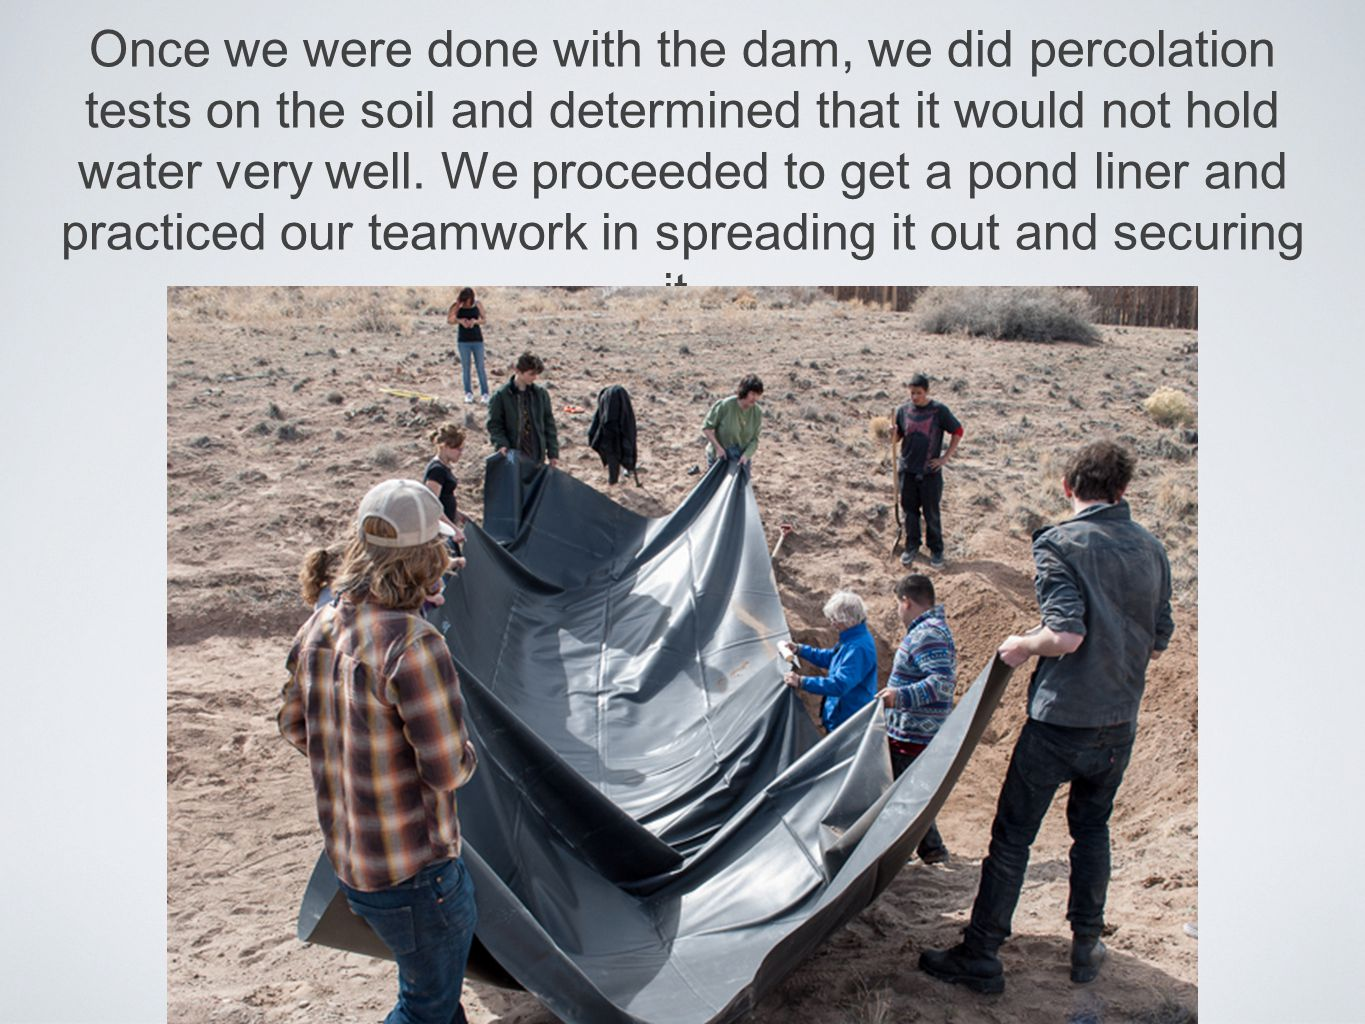 Once we were done with the dam, we did percolation tests on the soil and determined that it would not hold water very well.